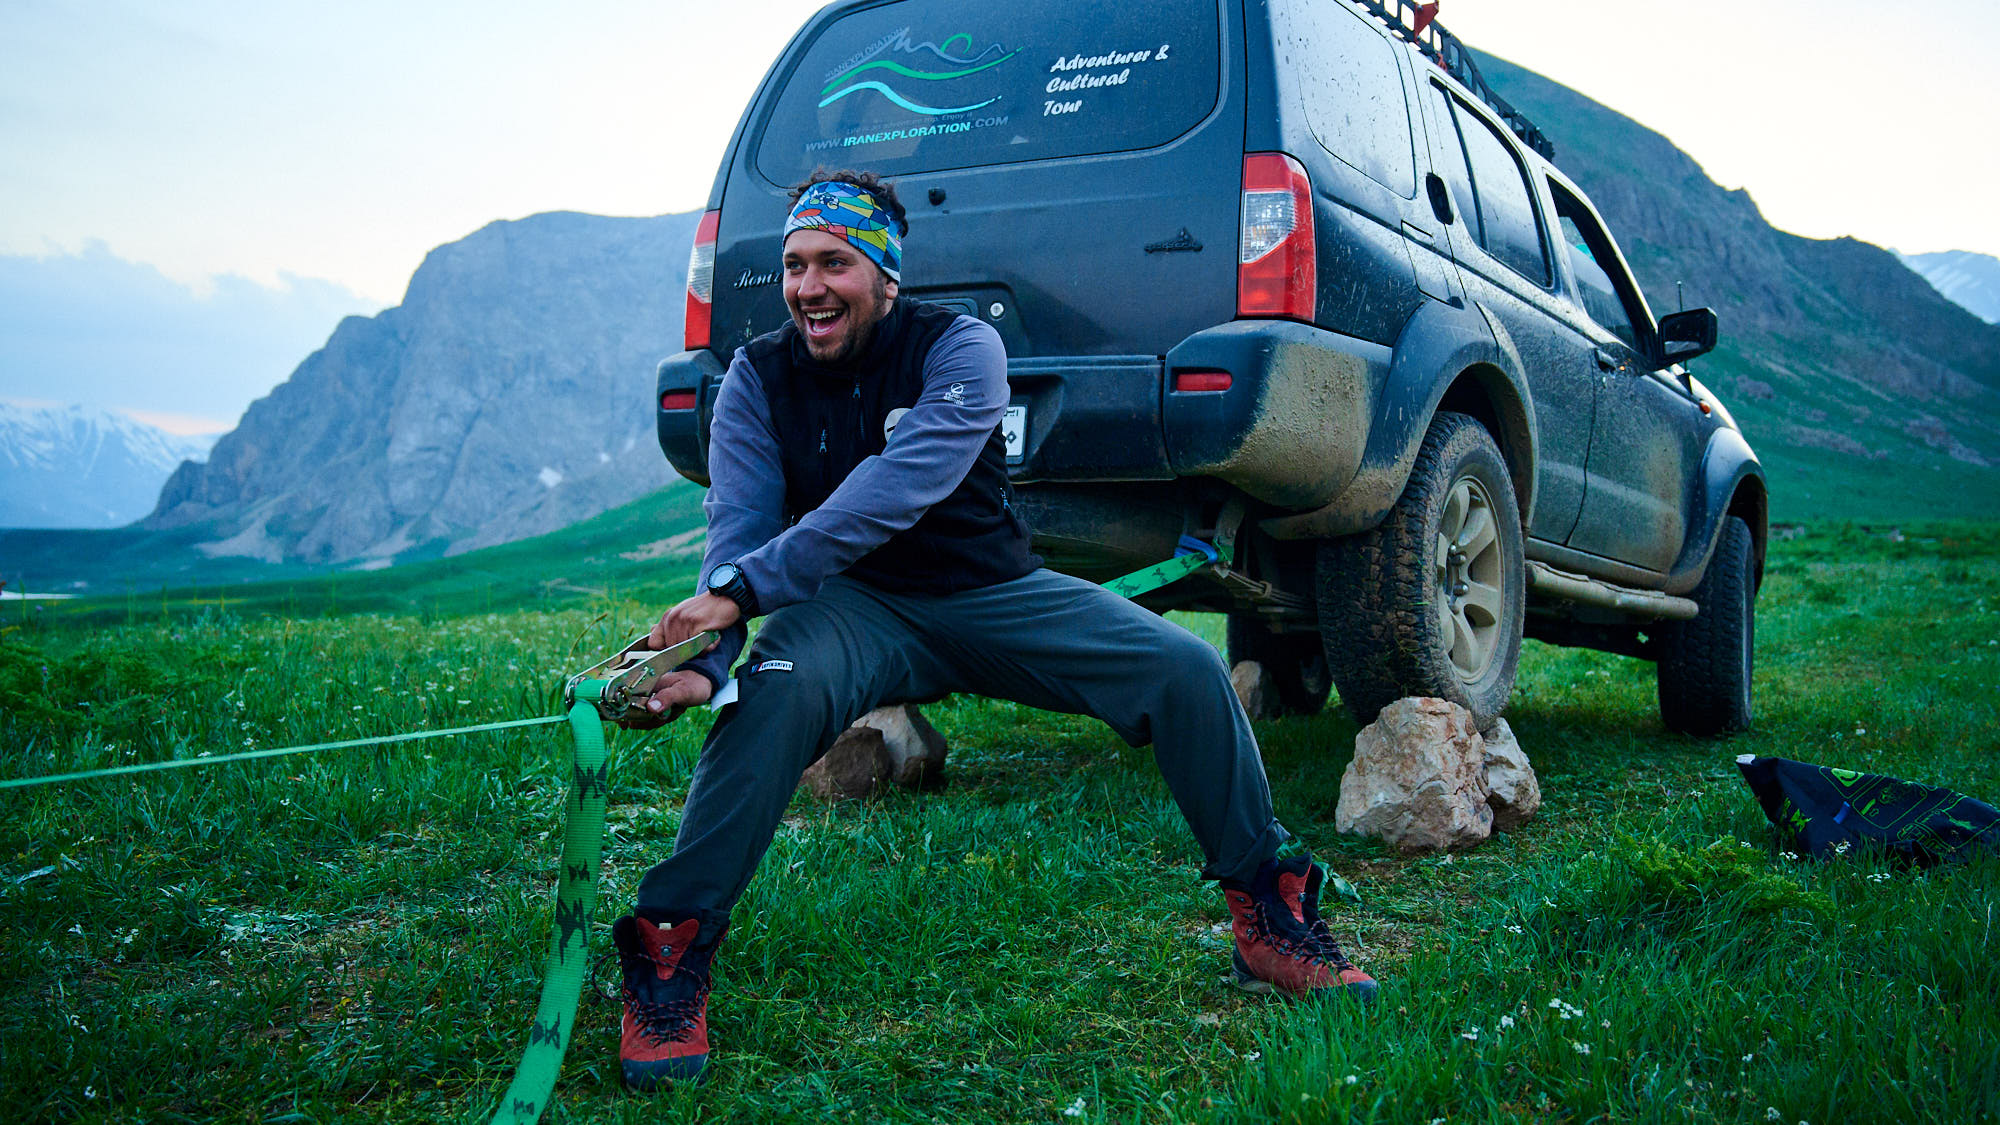 Rigging a slackline in Dar valley in Iran